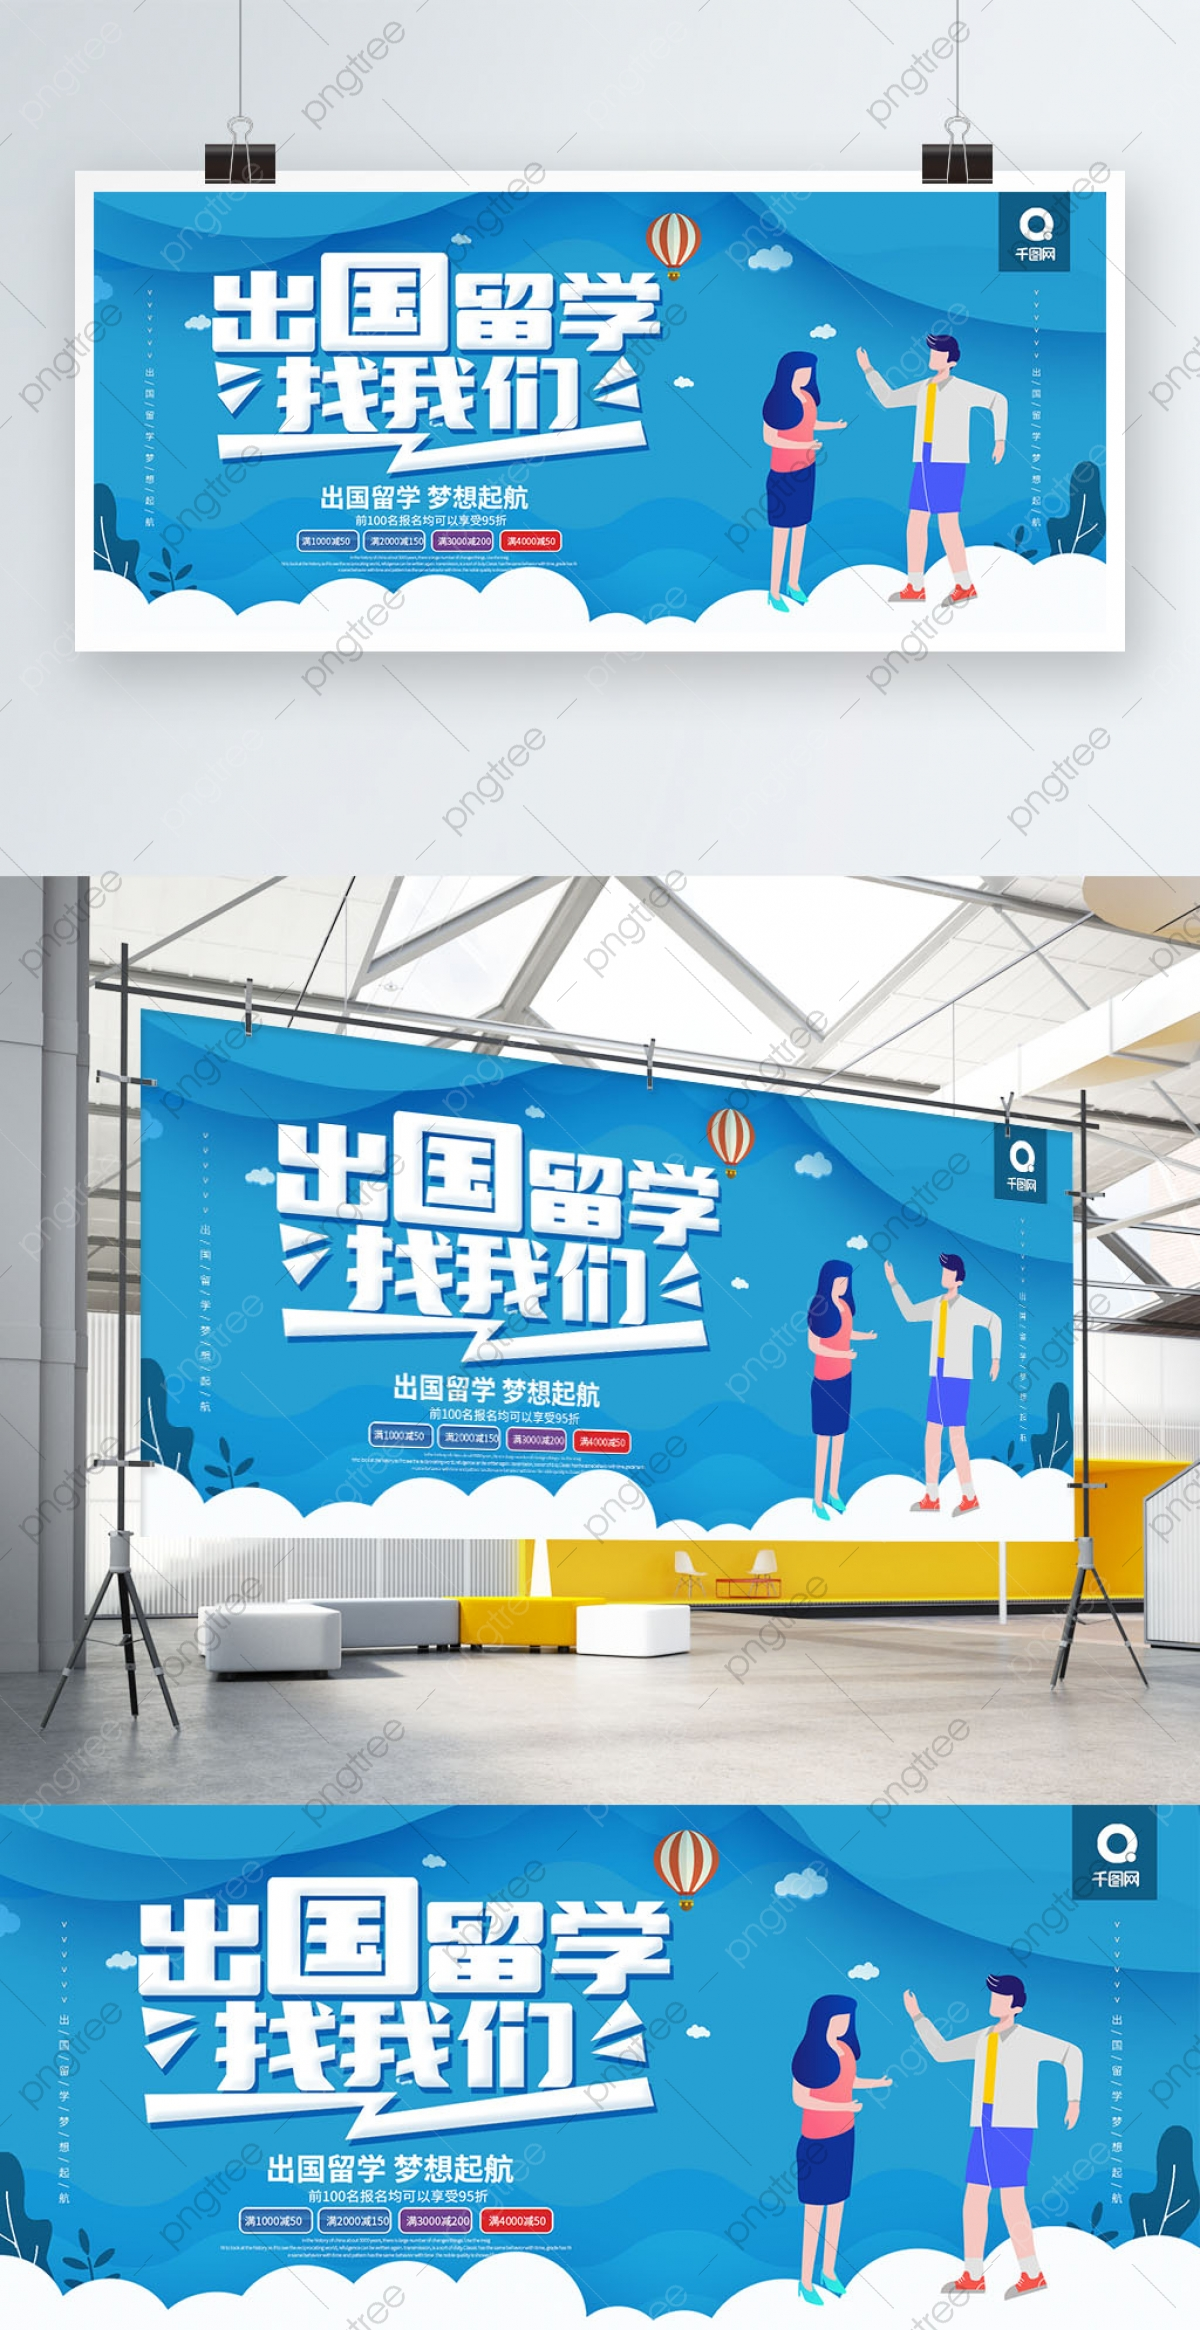 Banner Study Tour : banner, study, Study, Beautiful, Background, Exhibition, Board, Template, Download, Pngtree